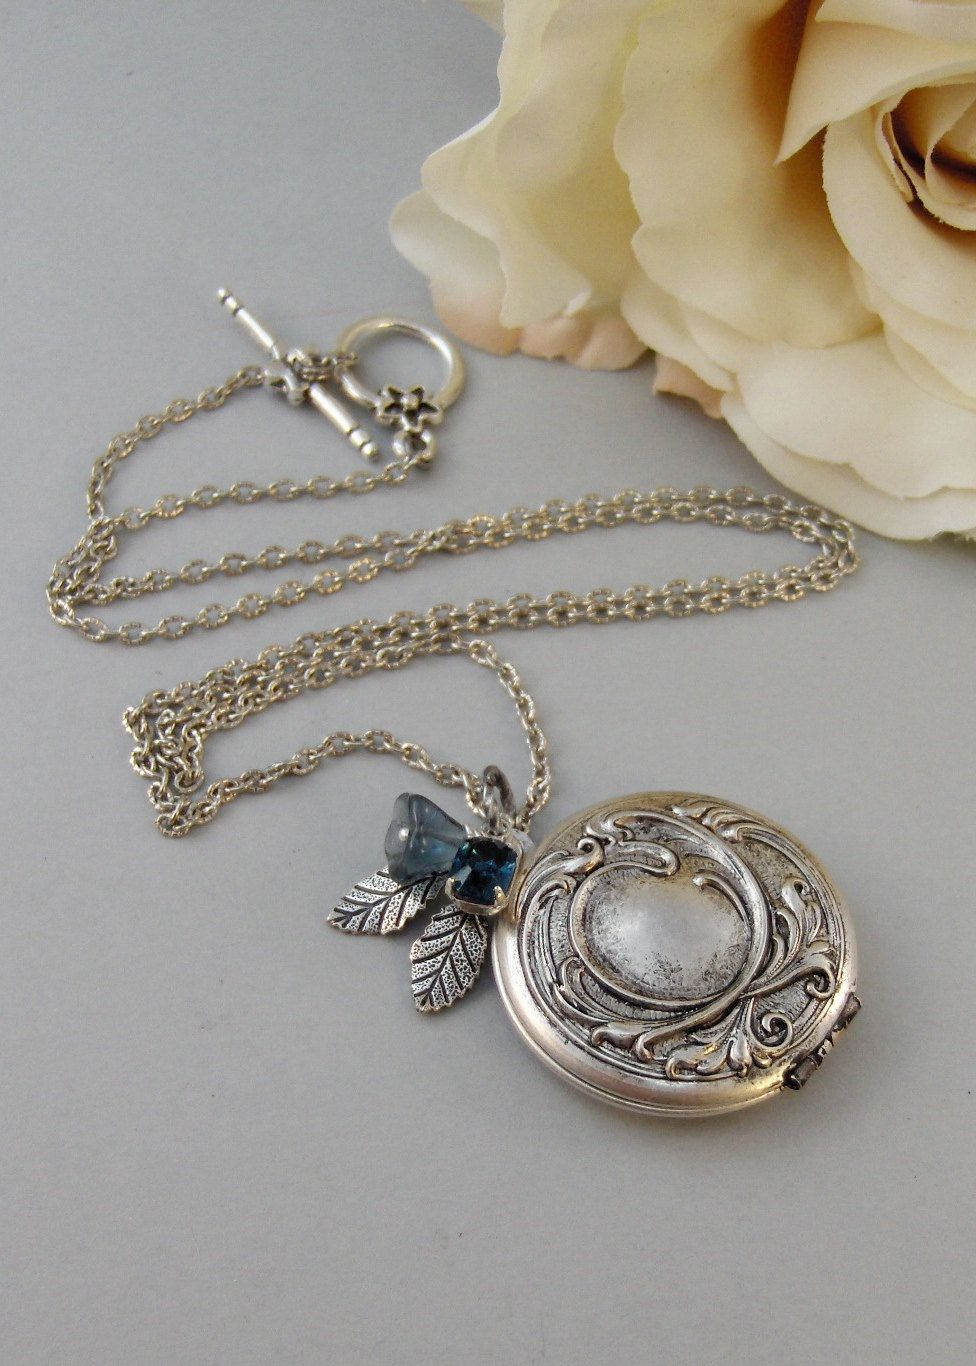 mikolay by oval silver lockets locket necklace sunburst monica sapphire desires kosann in pendant with rich jewelry white collections accents